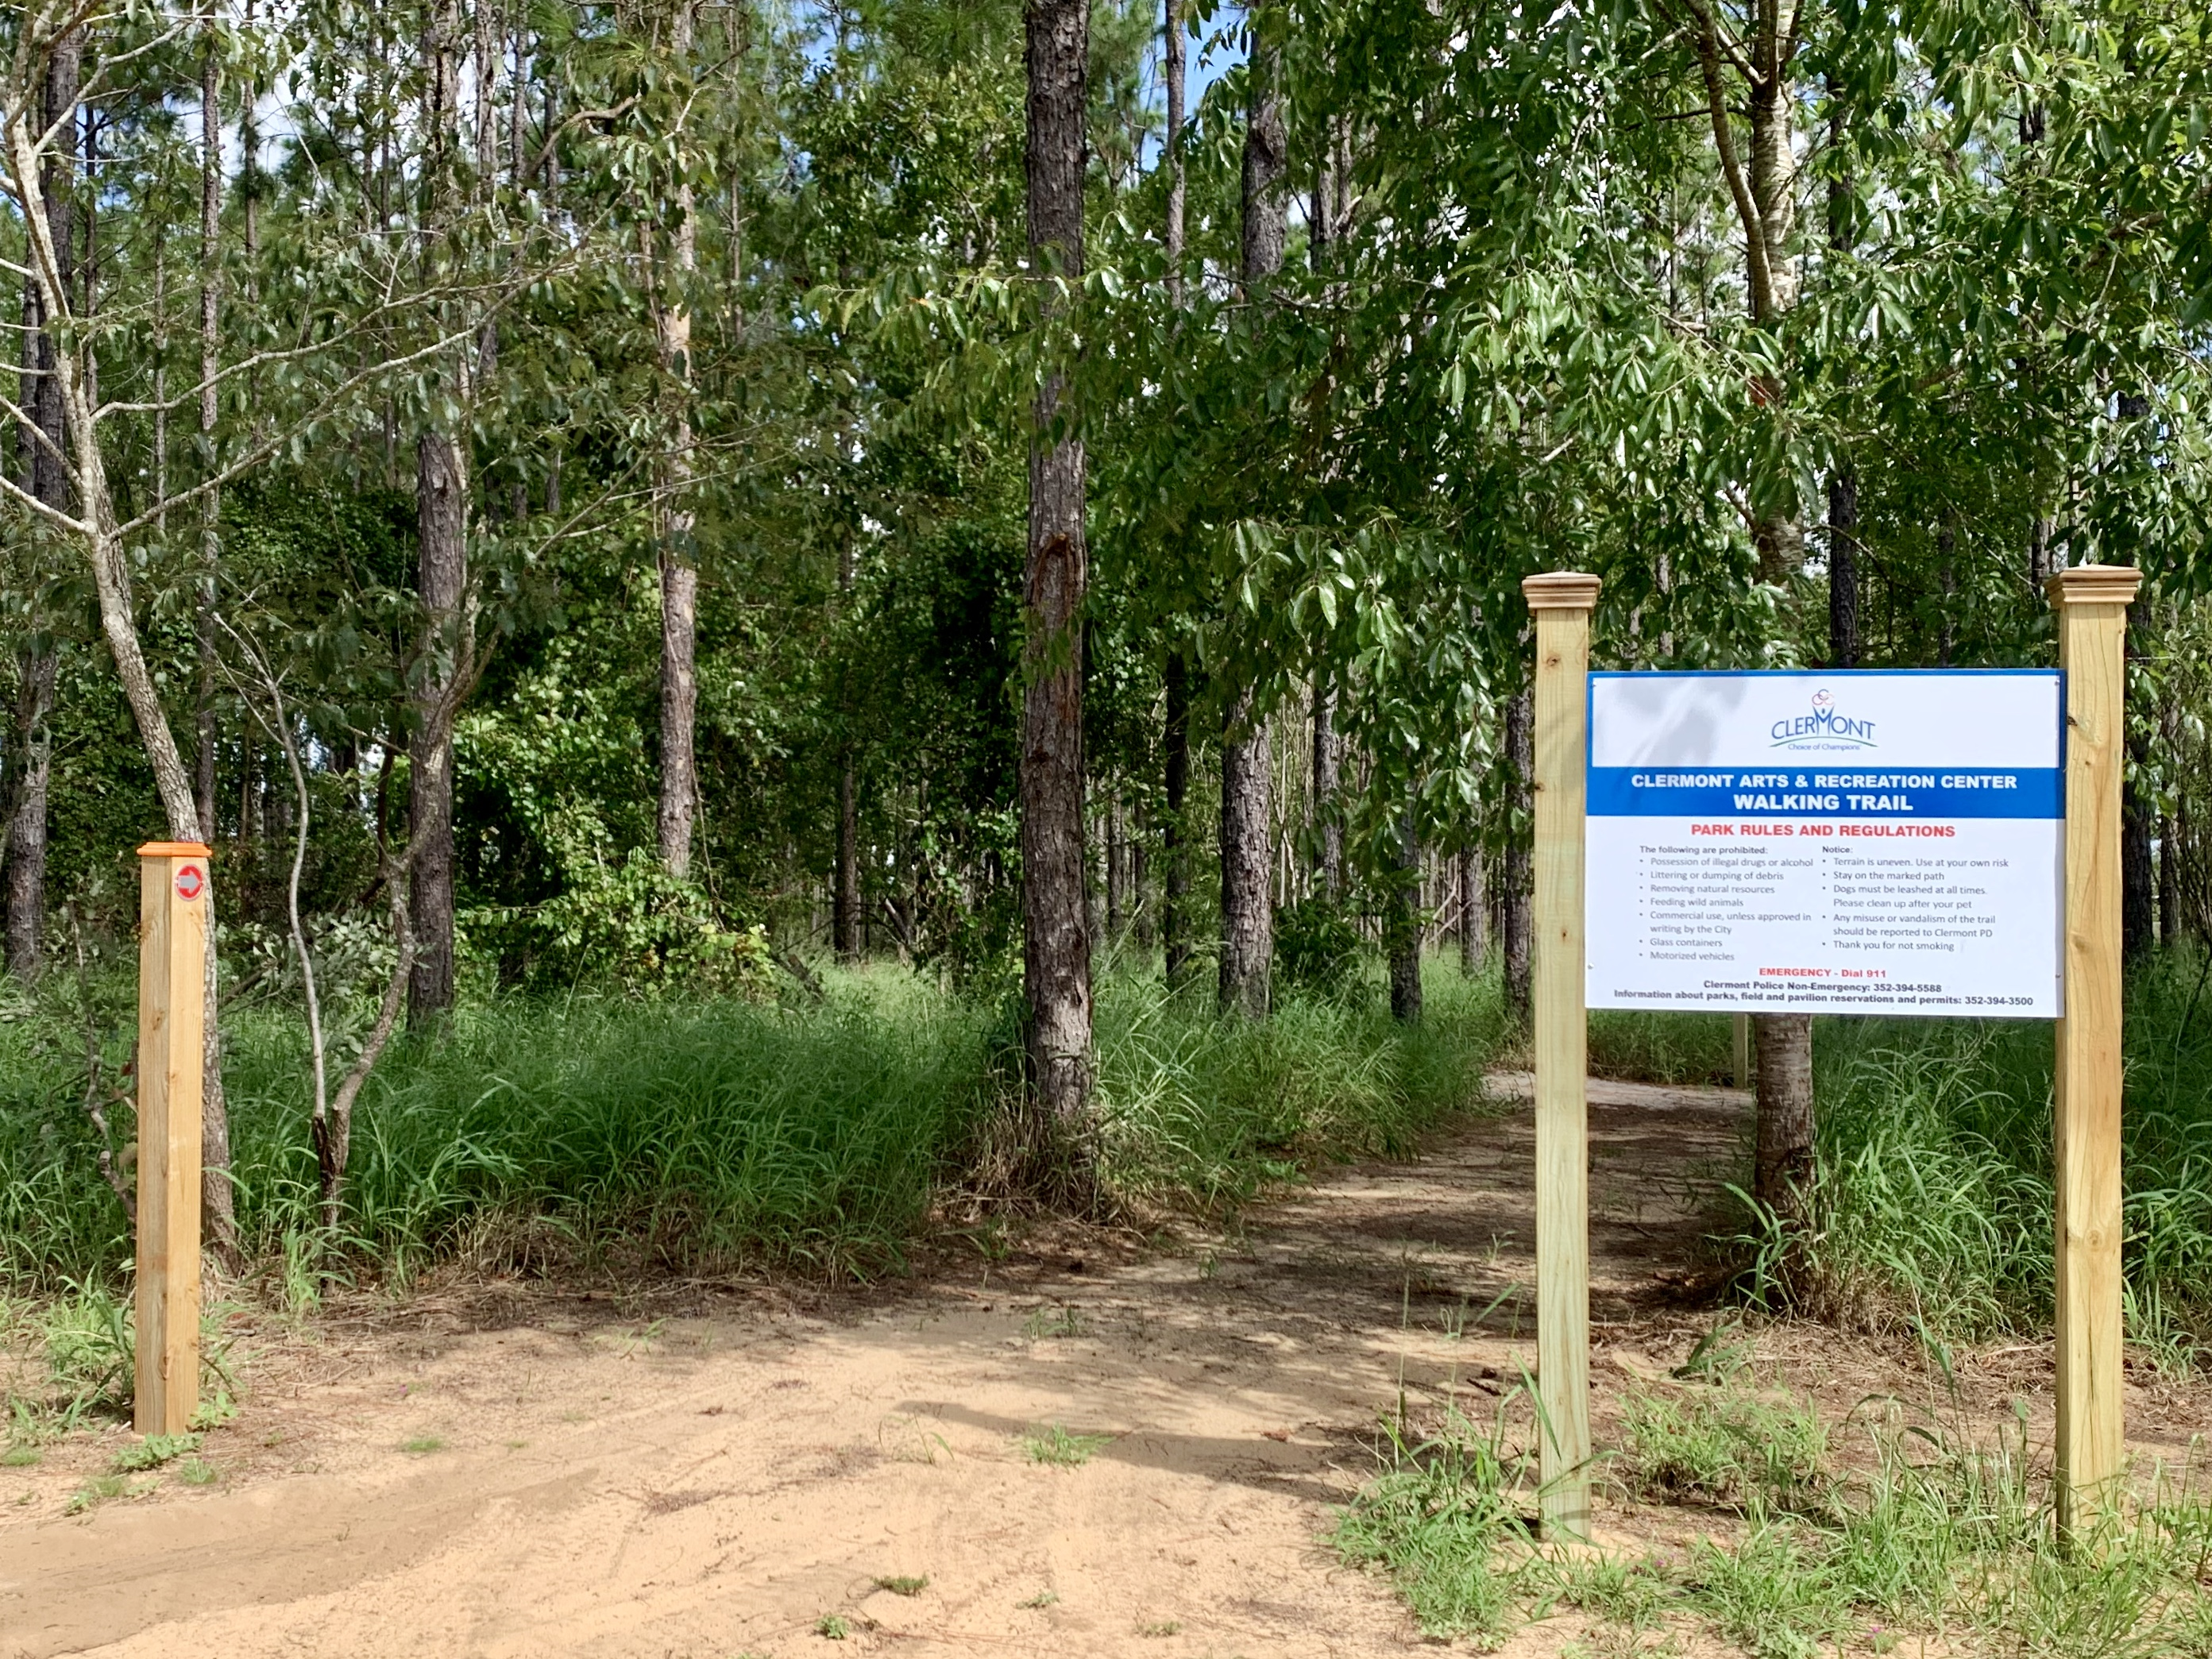 photo of entrance to trail with sign, trees, dirt path, trail post with arrow